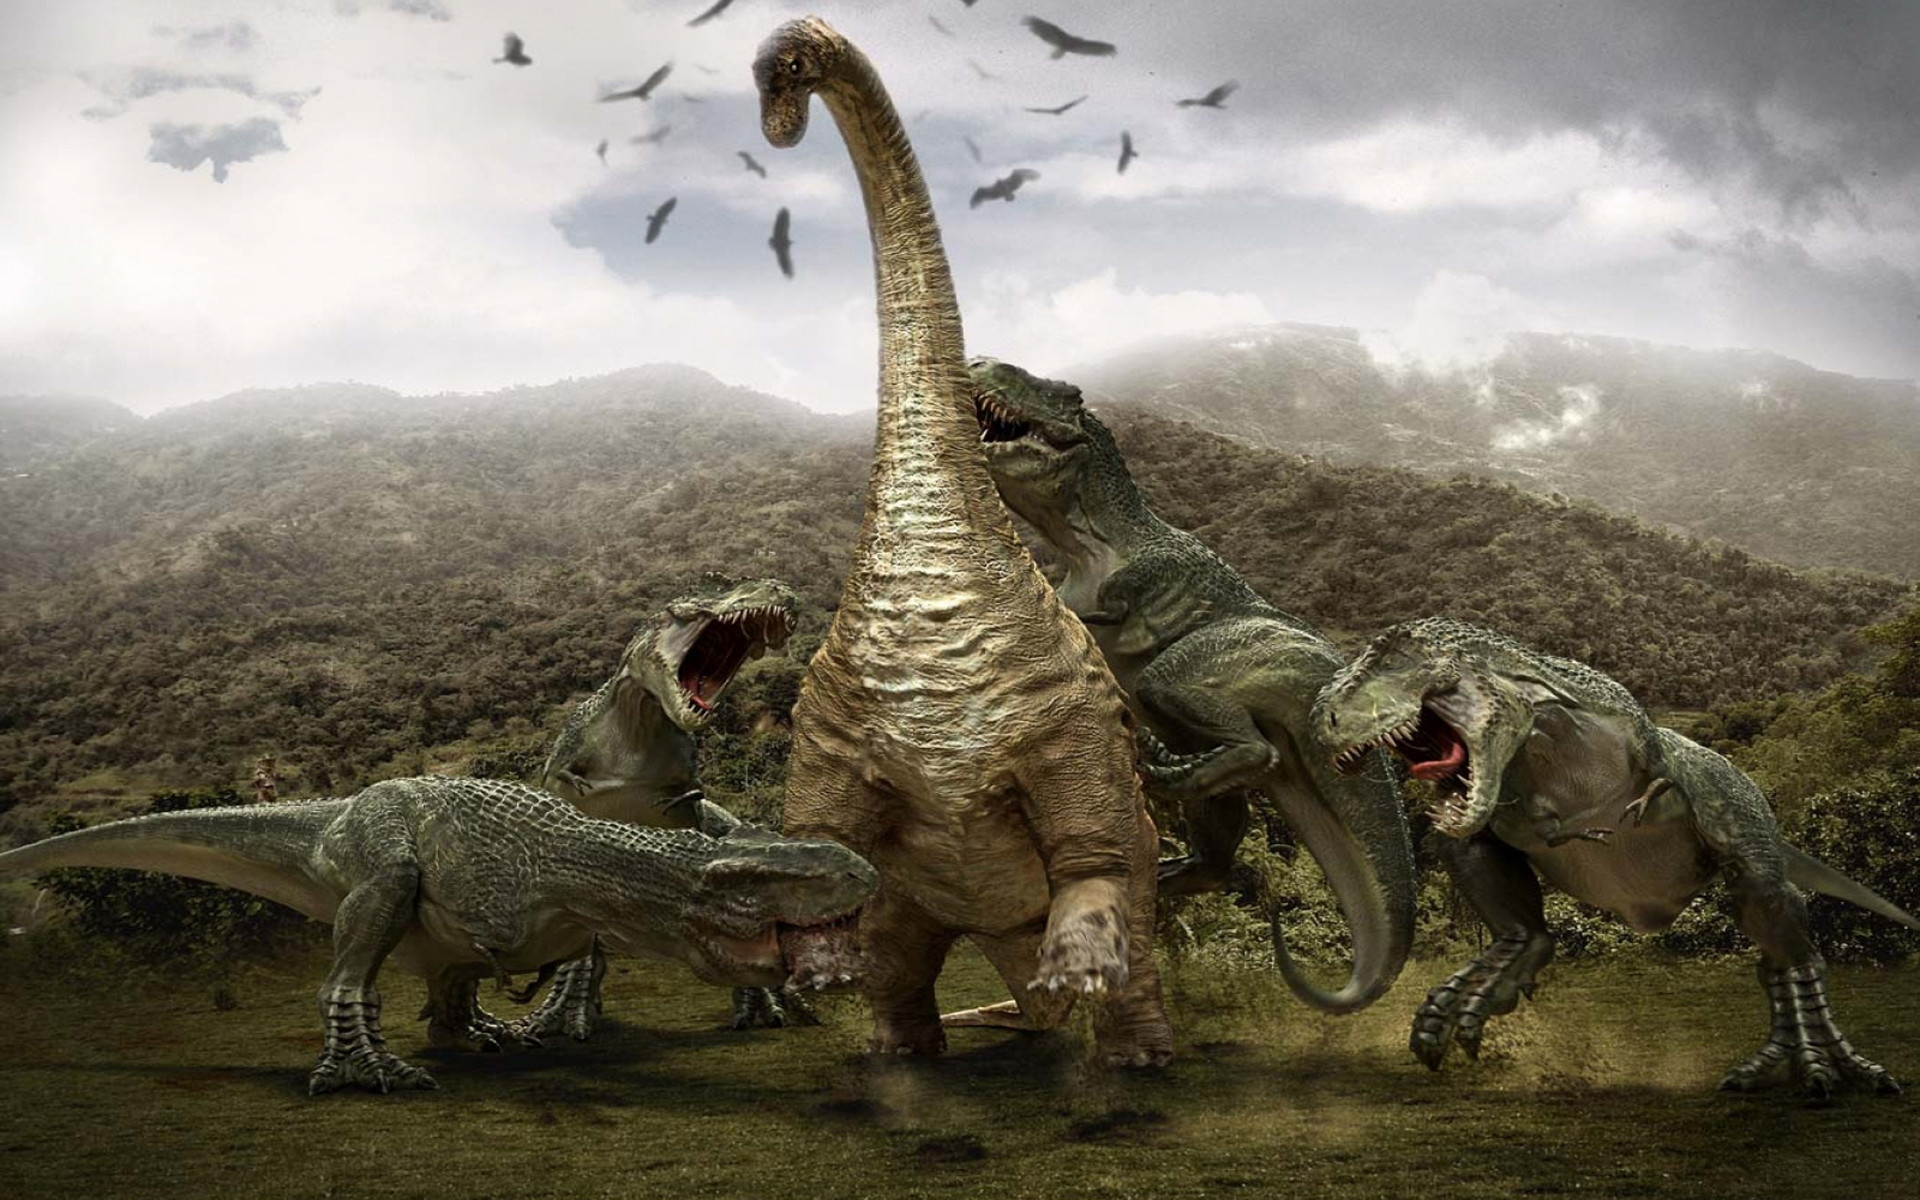 1920x1200 3d Dinosaur Hd Wallpapers.